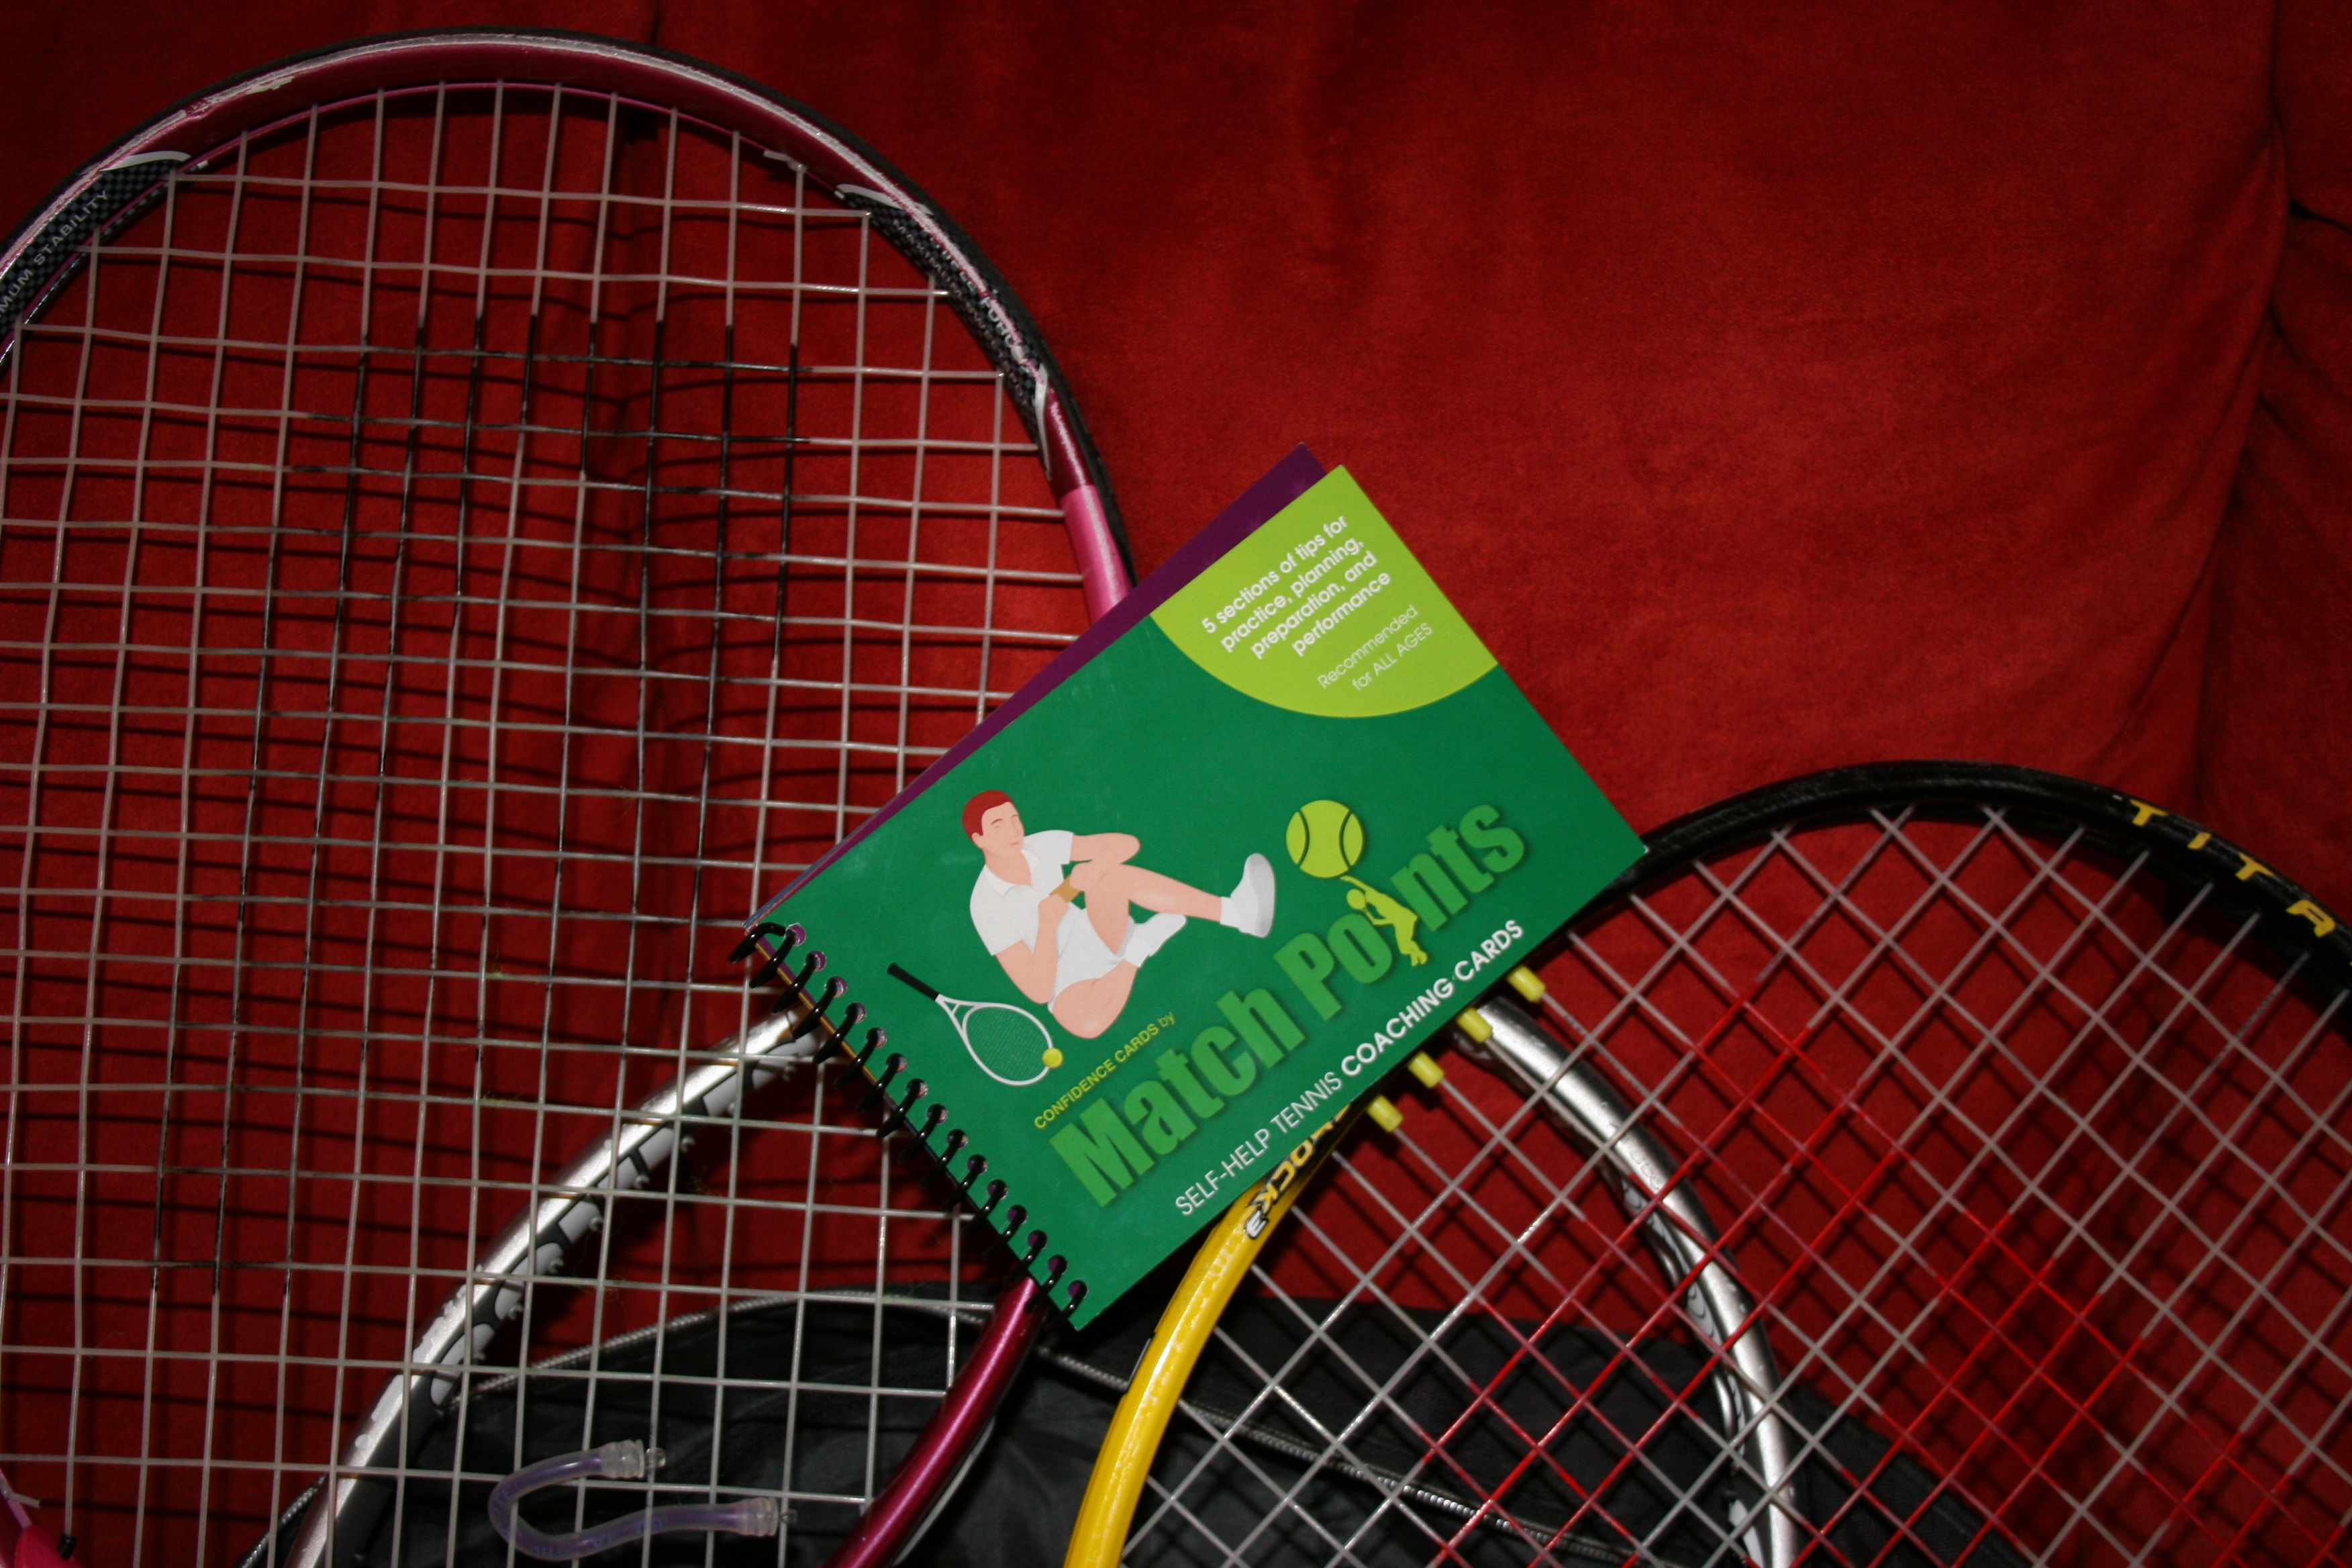 Confidence Cards By Match Points Www Confidencecards Com Self Help Tennis Coaching Cards Tennis Coach Tennis Match Point